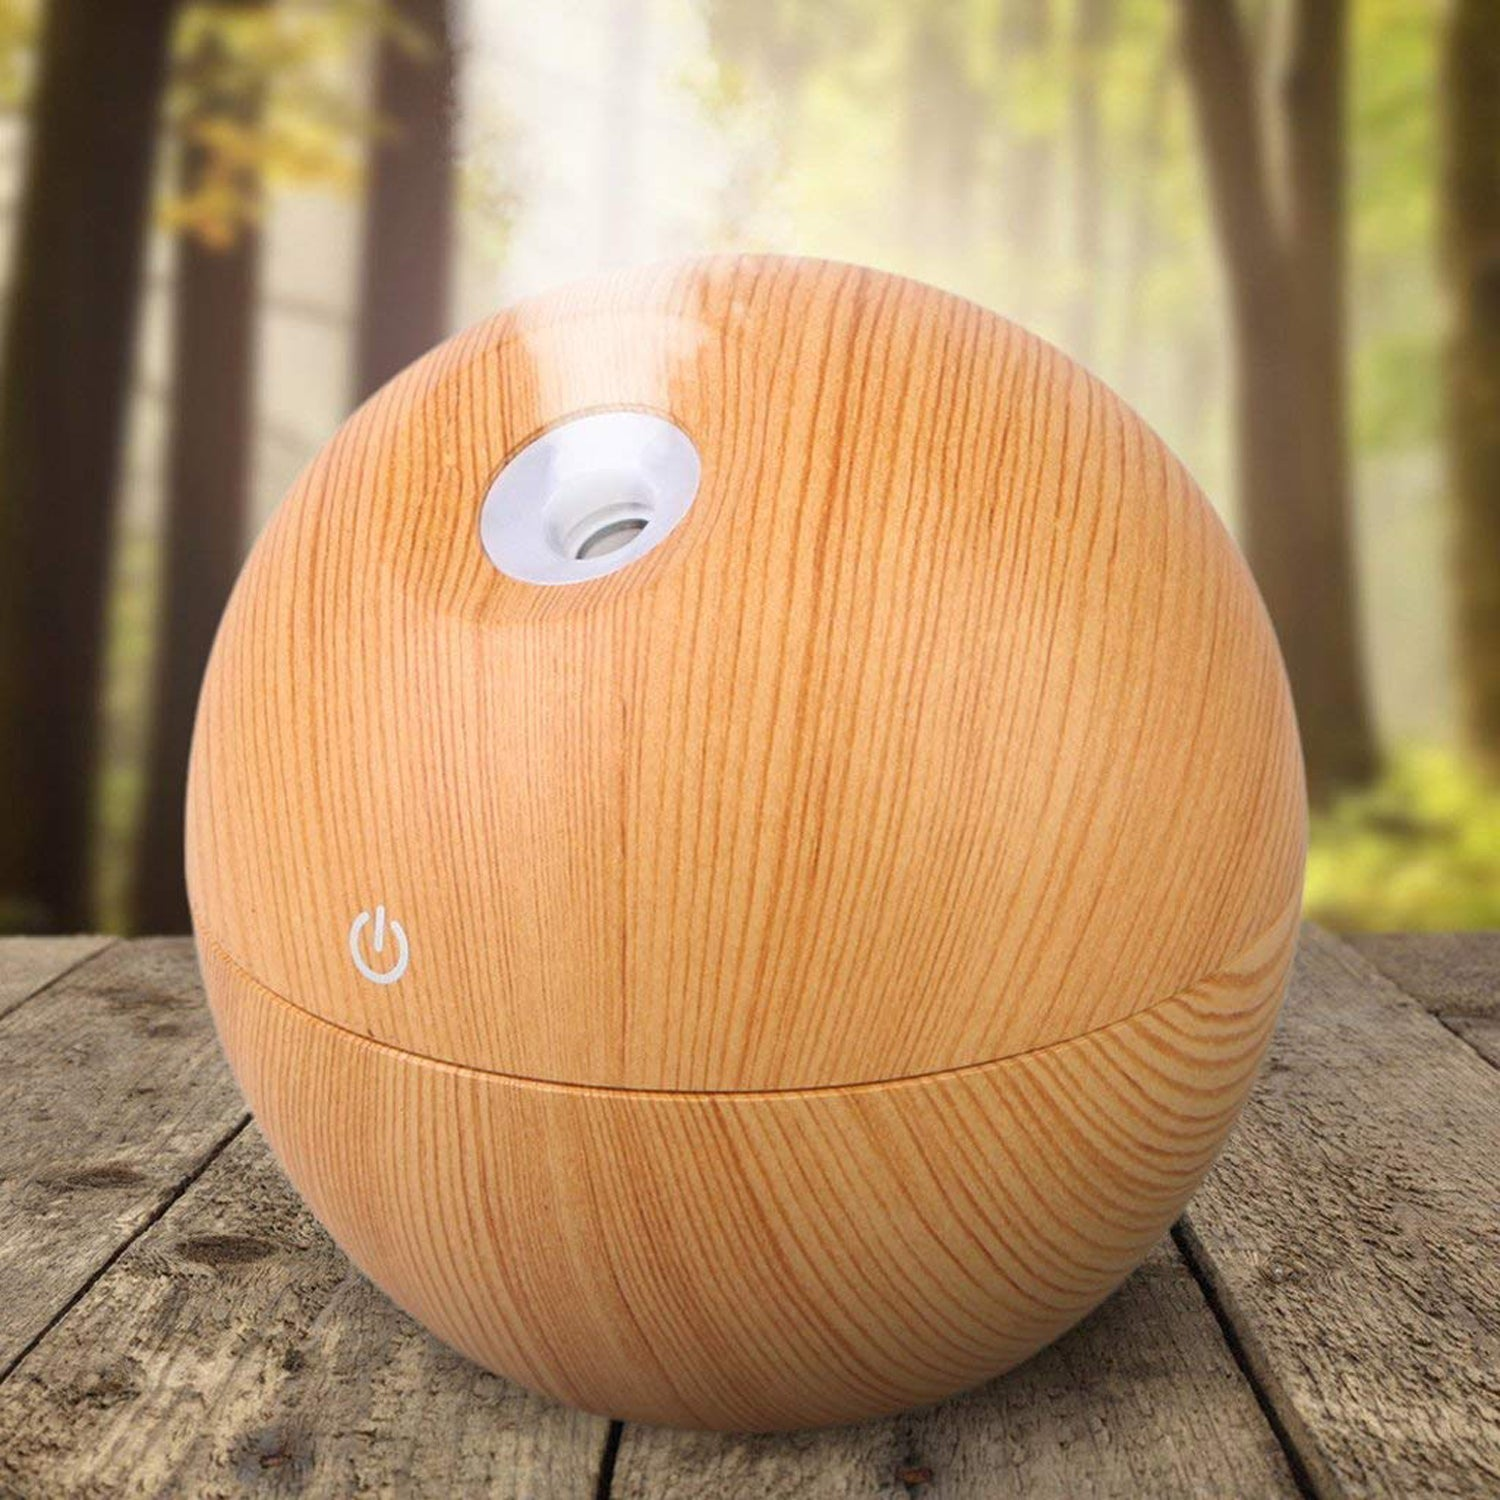 Portable Mini Wood Finish Aroma Atomization Humidifier For Home Office and Car